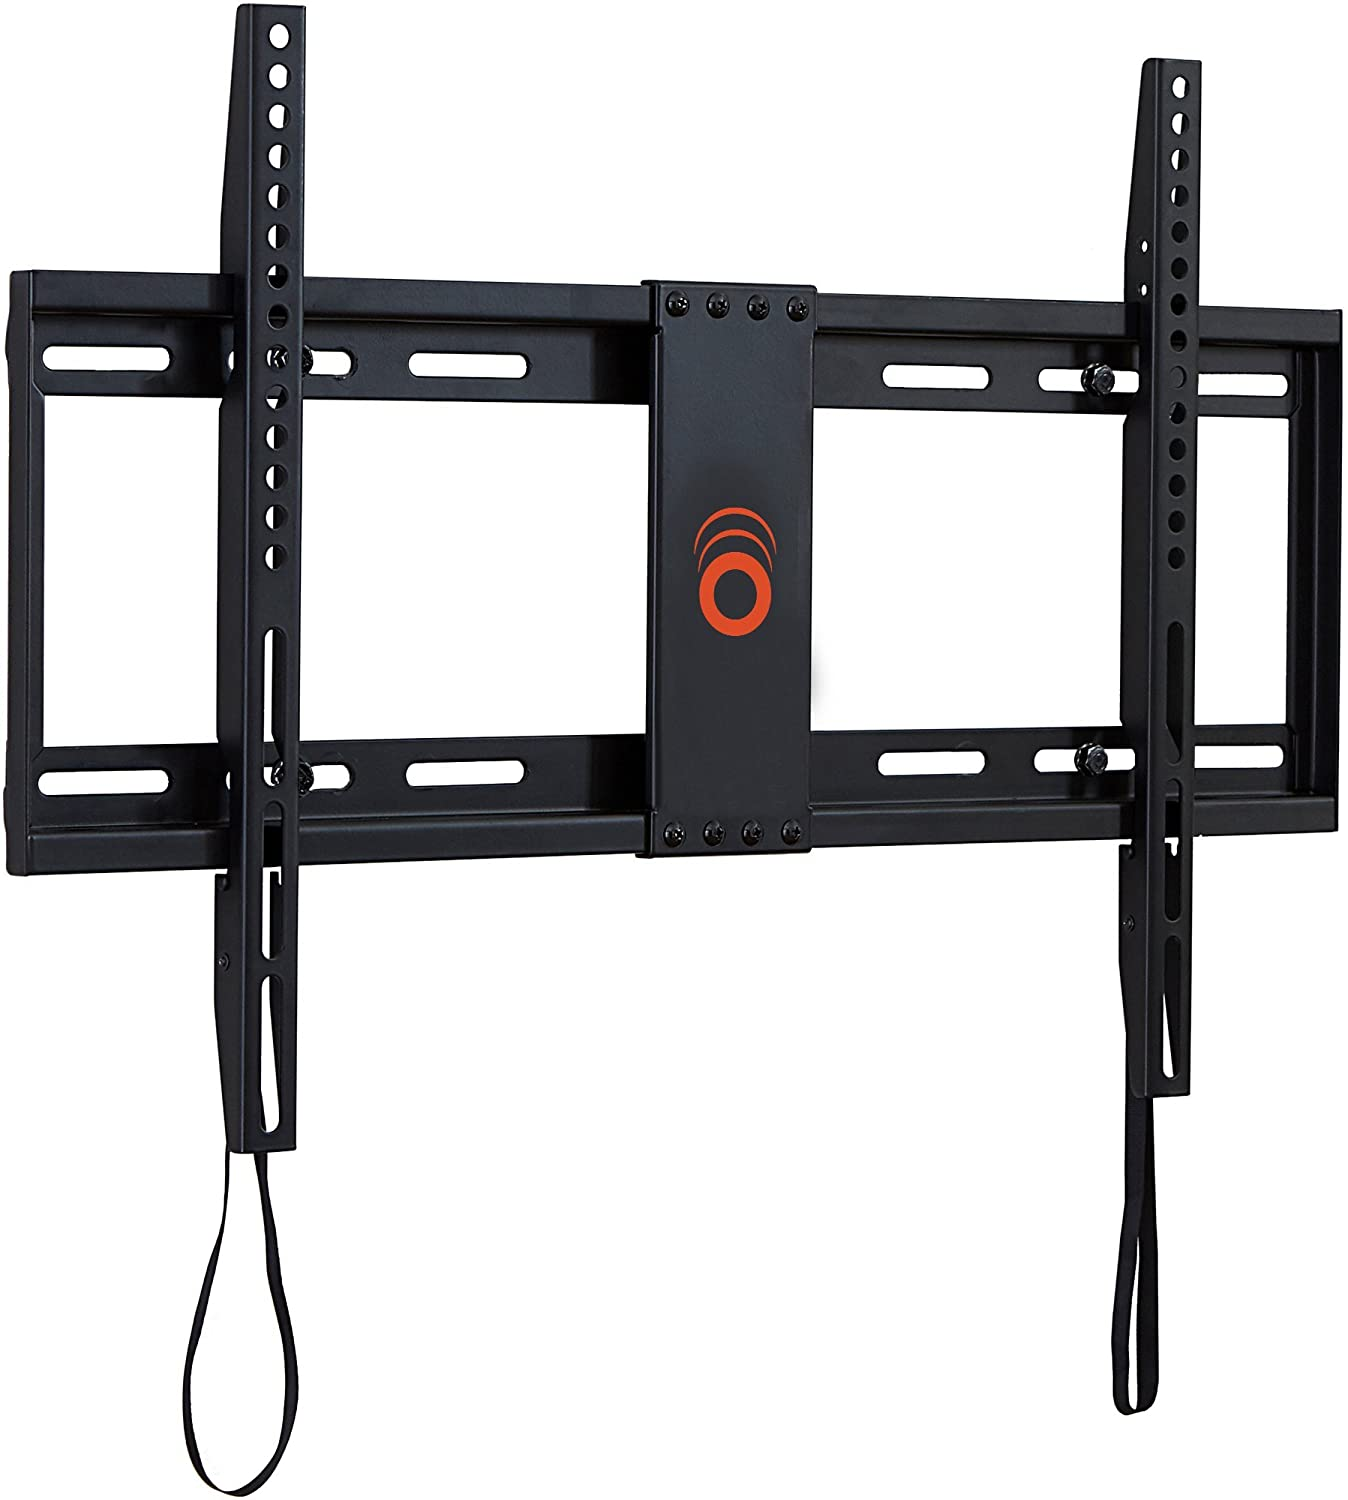 excellence ECHOGEAR Low Profile Fixed TV Wall Mount - Super sale Hol to Up for 85